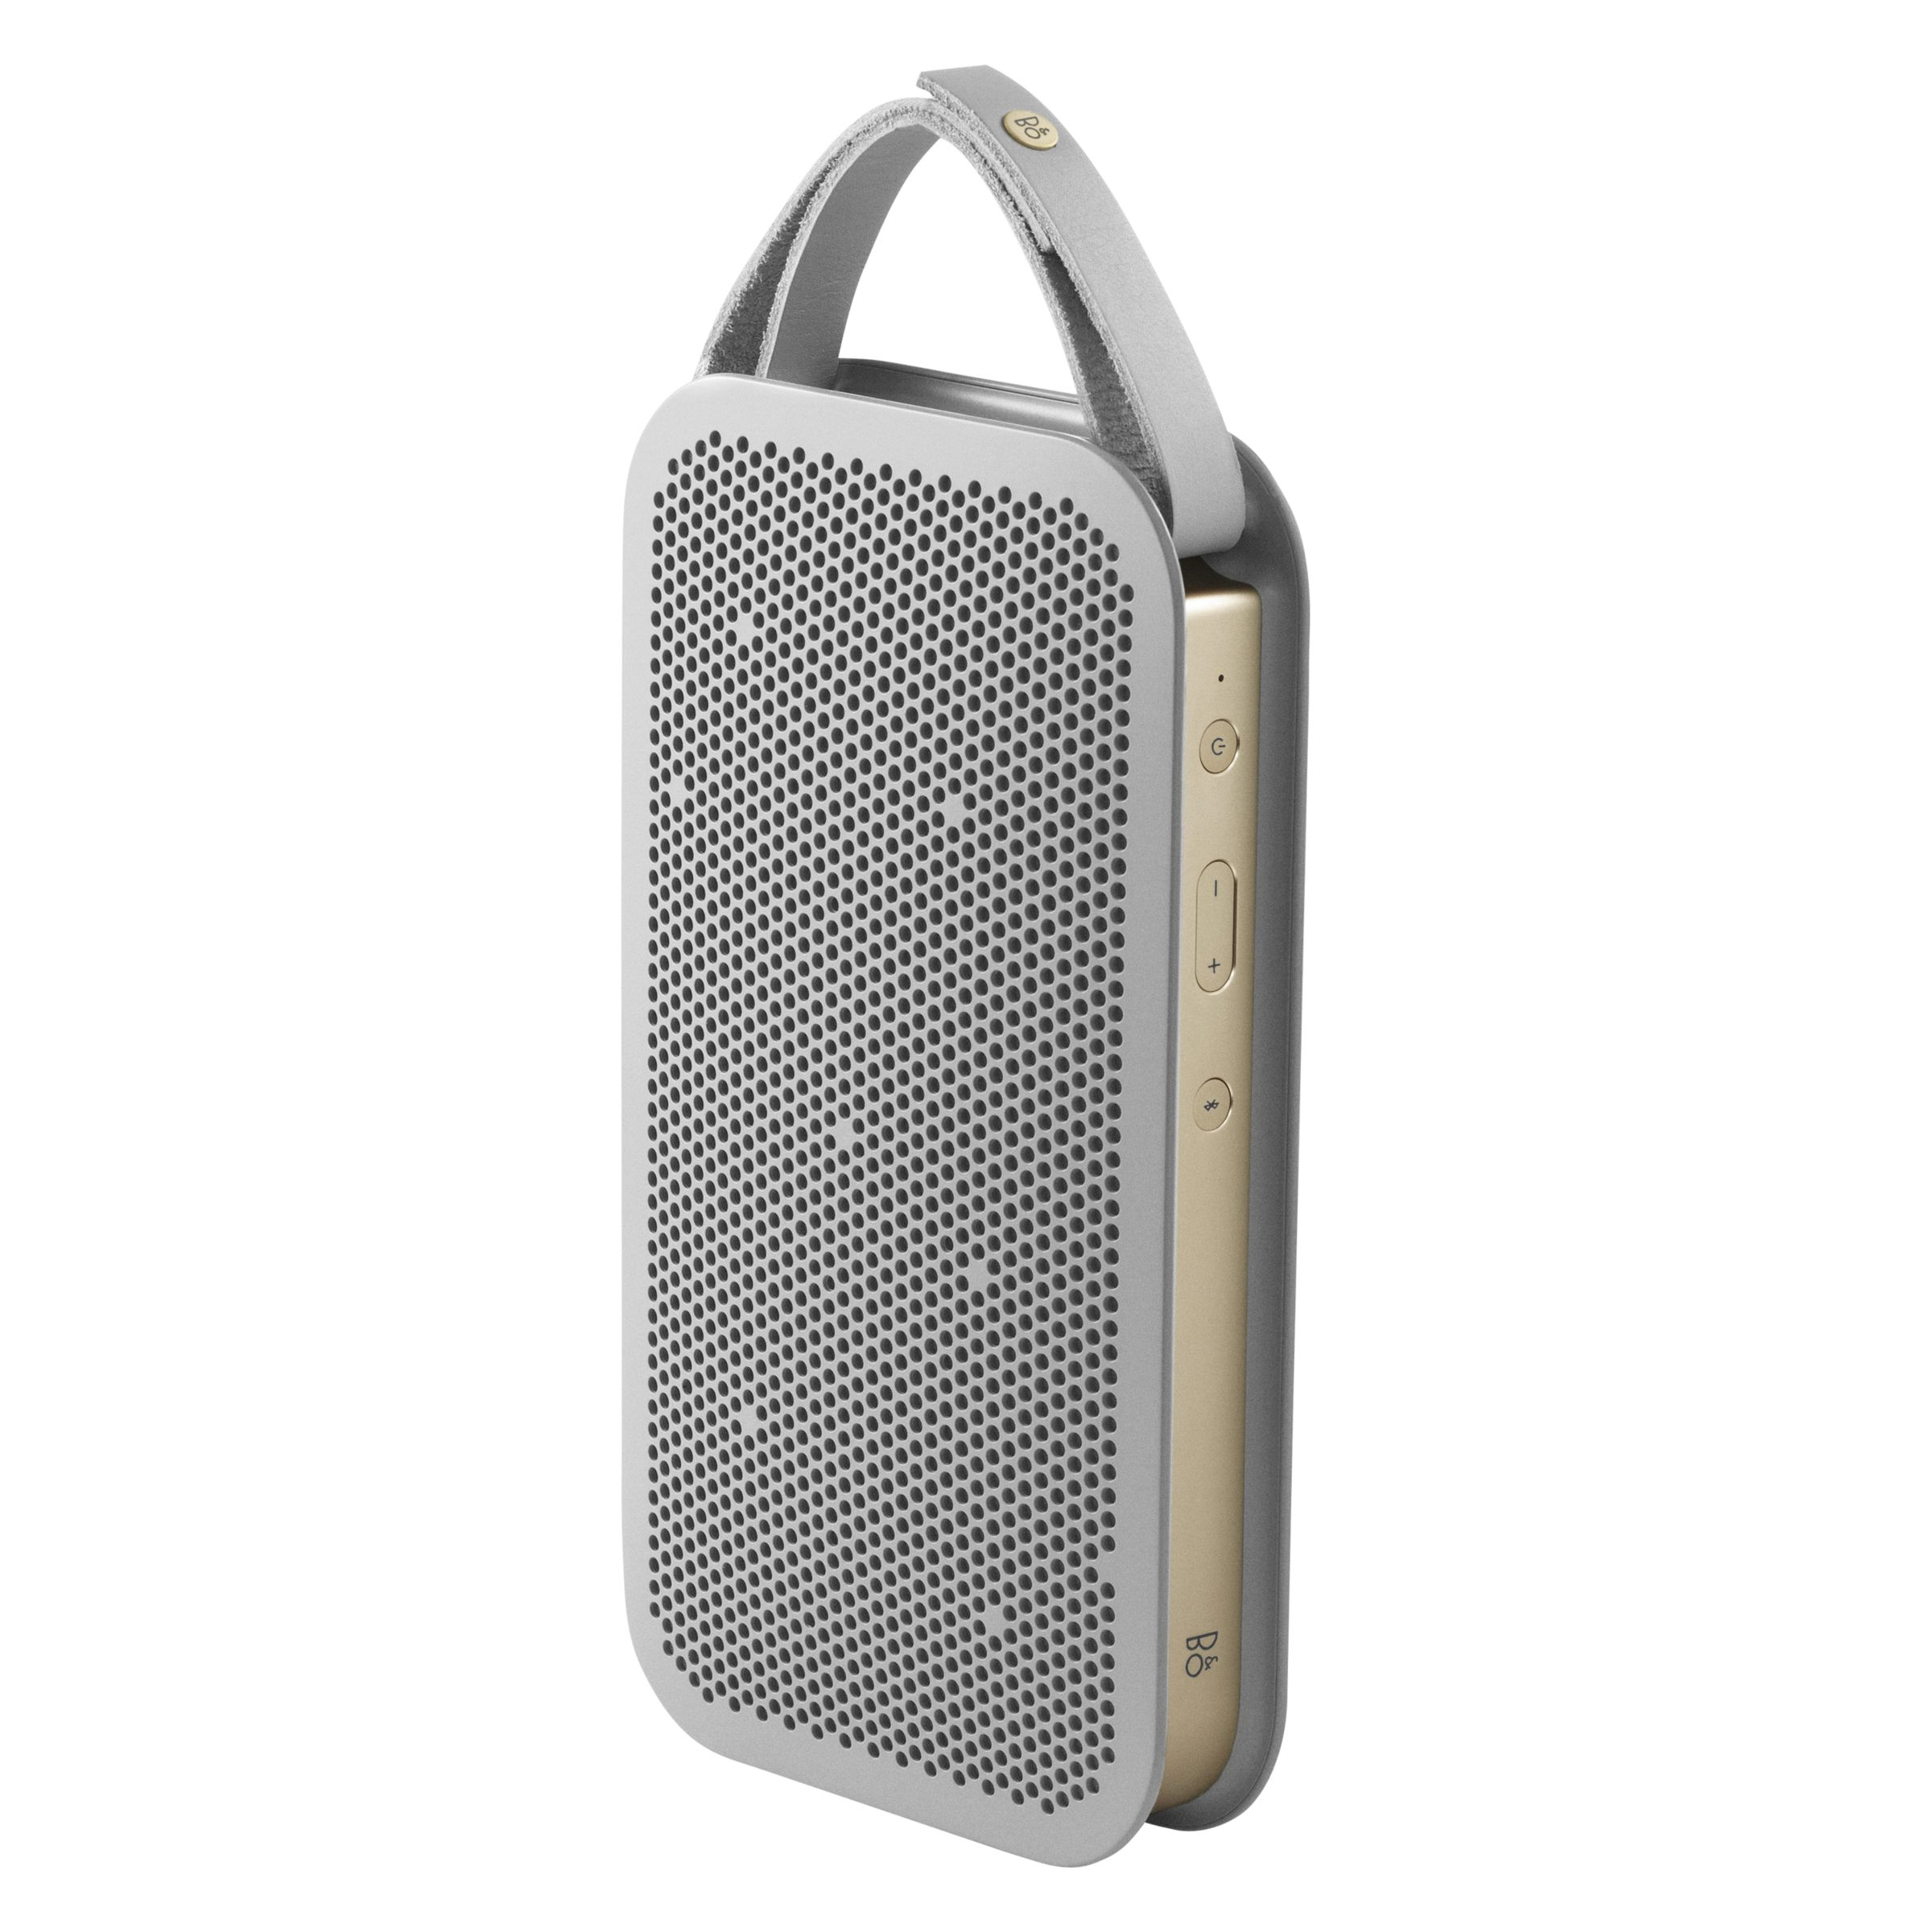 Bang & Olufsen B&O PLAY by Bang & Olufsen Beoplay A2 Portable Bluetooth Speaker